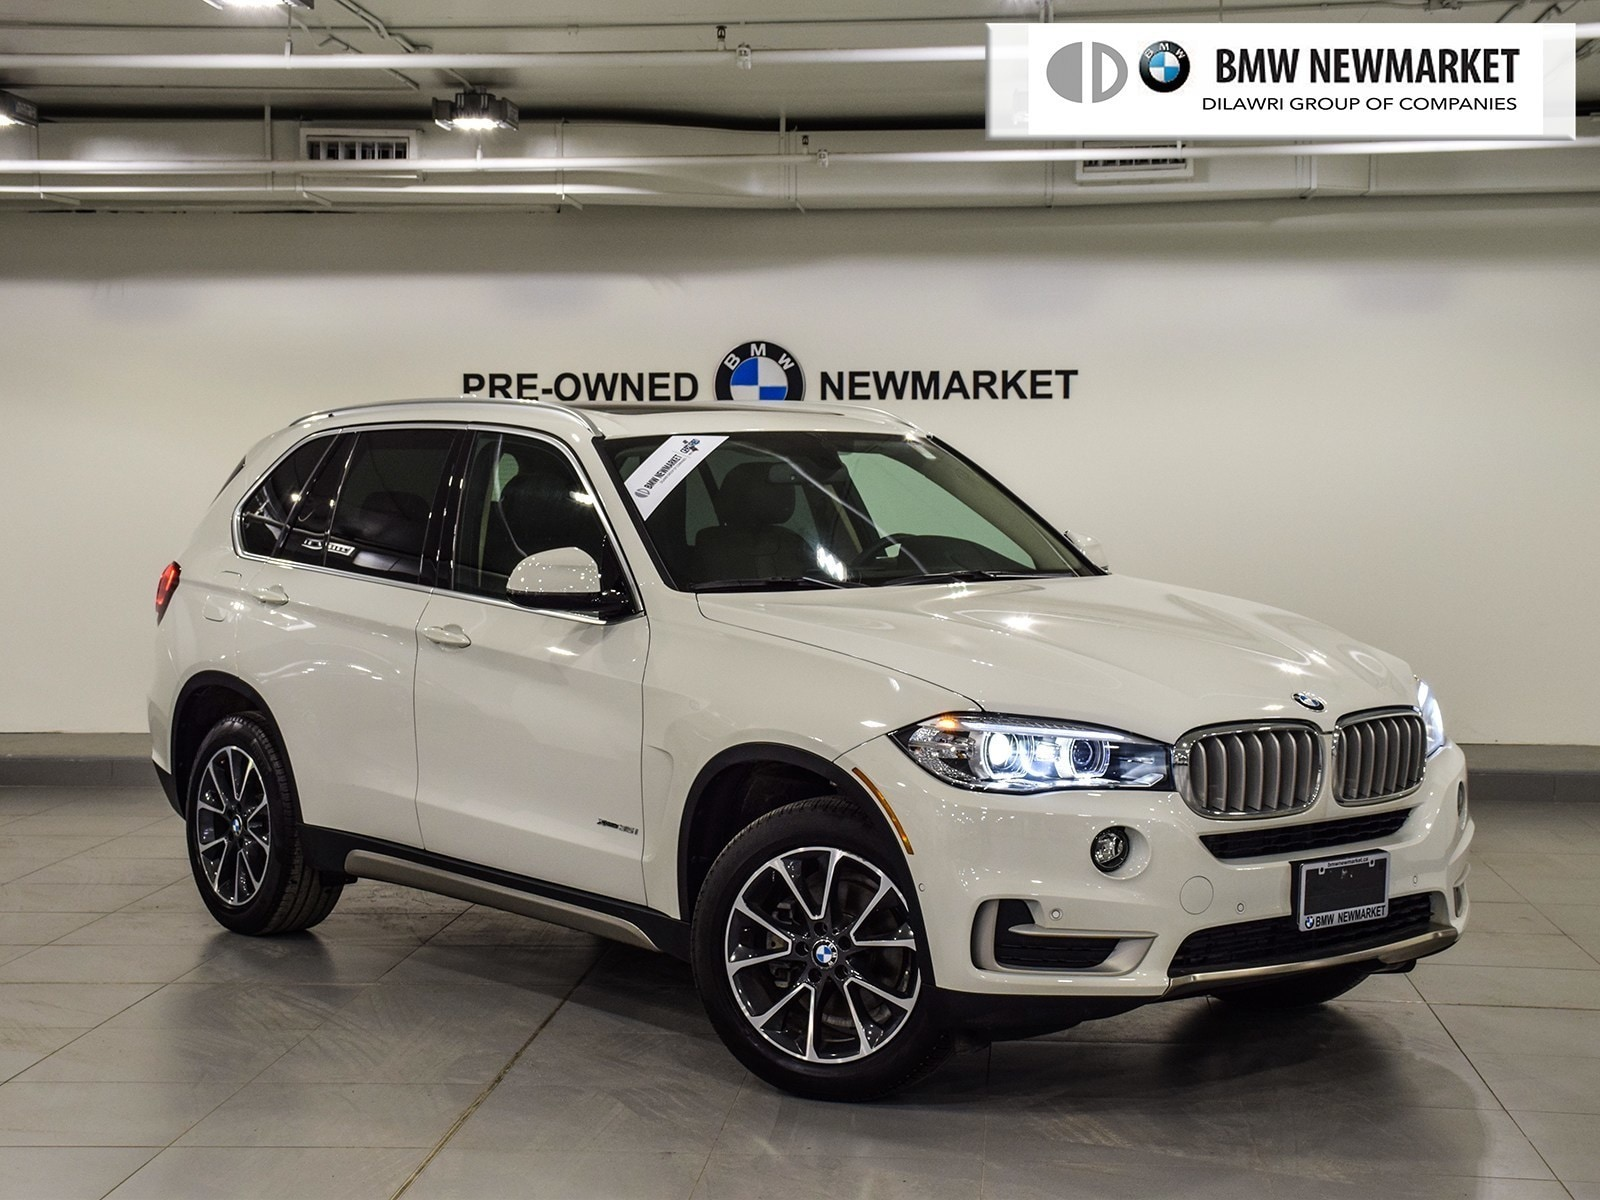 2018 BMW X5 Xdrive35i -1owner|NO Accidents| LOW KMS| SUV